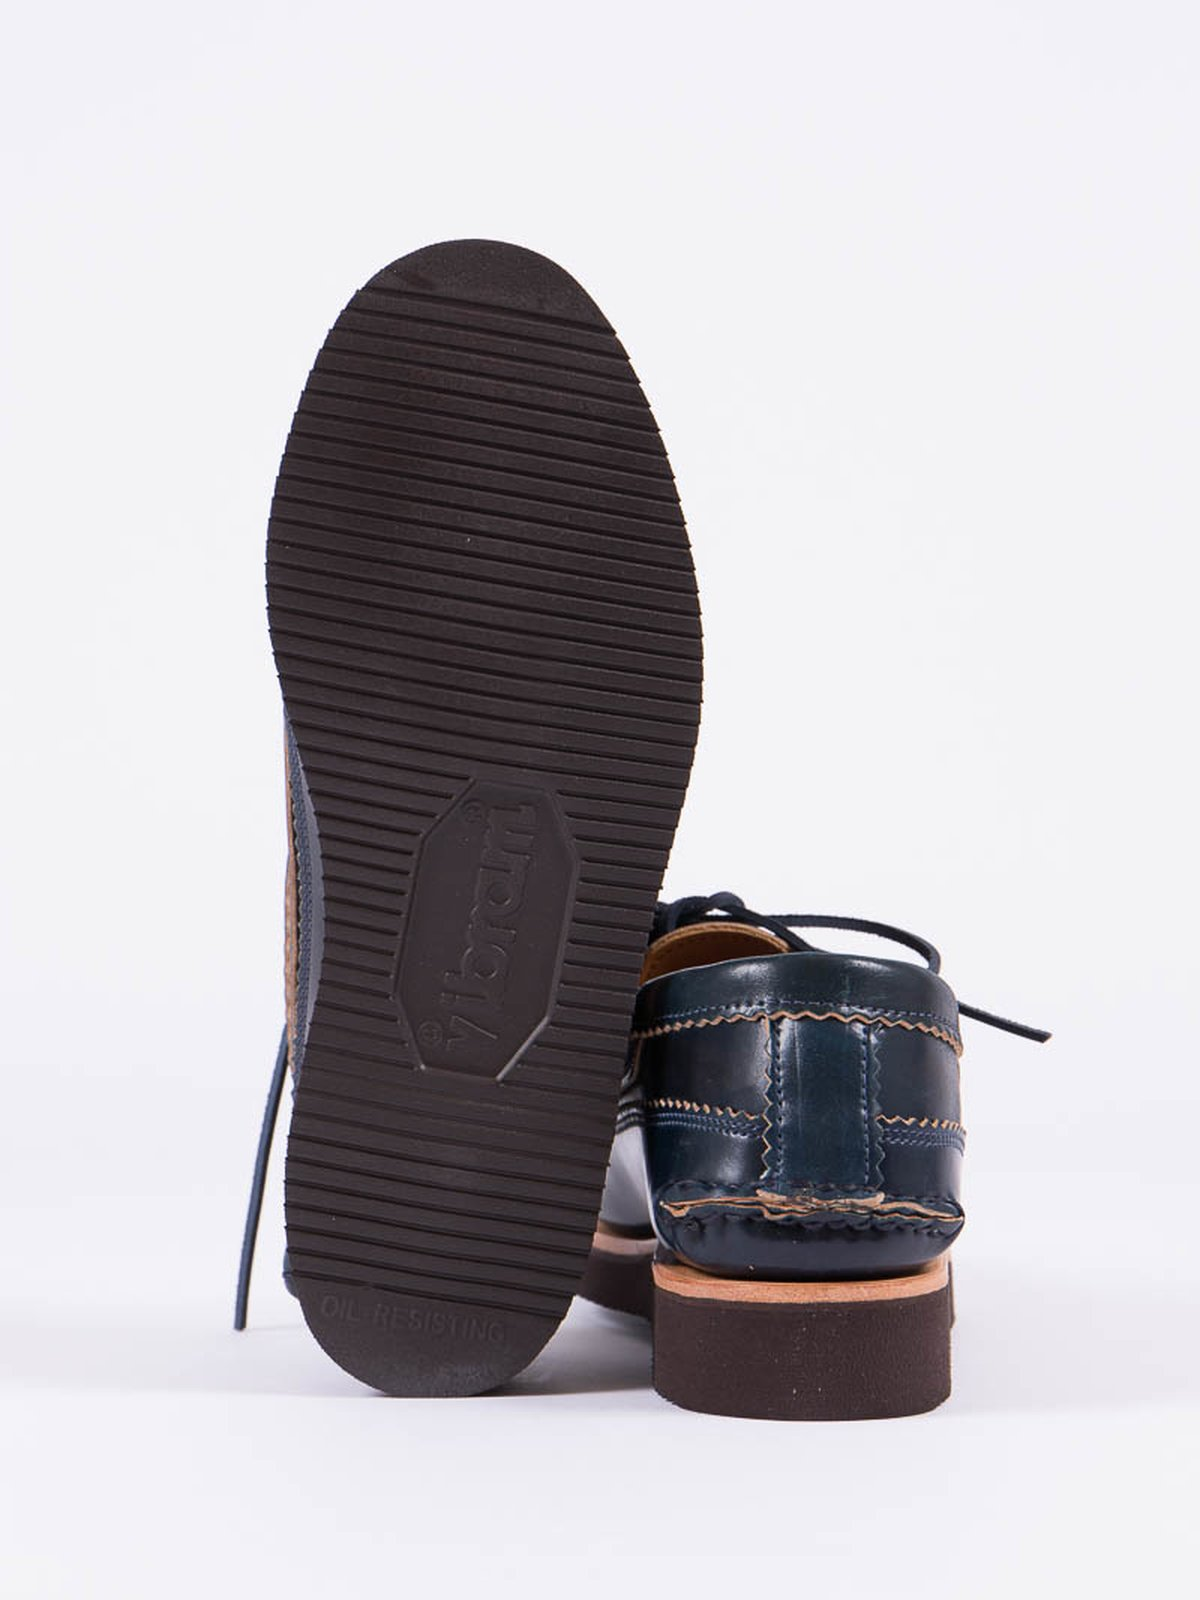 Navy Cordovan Ghillie Moc DB Shoe Exclusive - Image 4